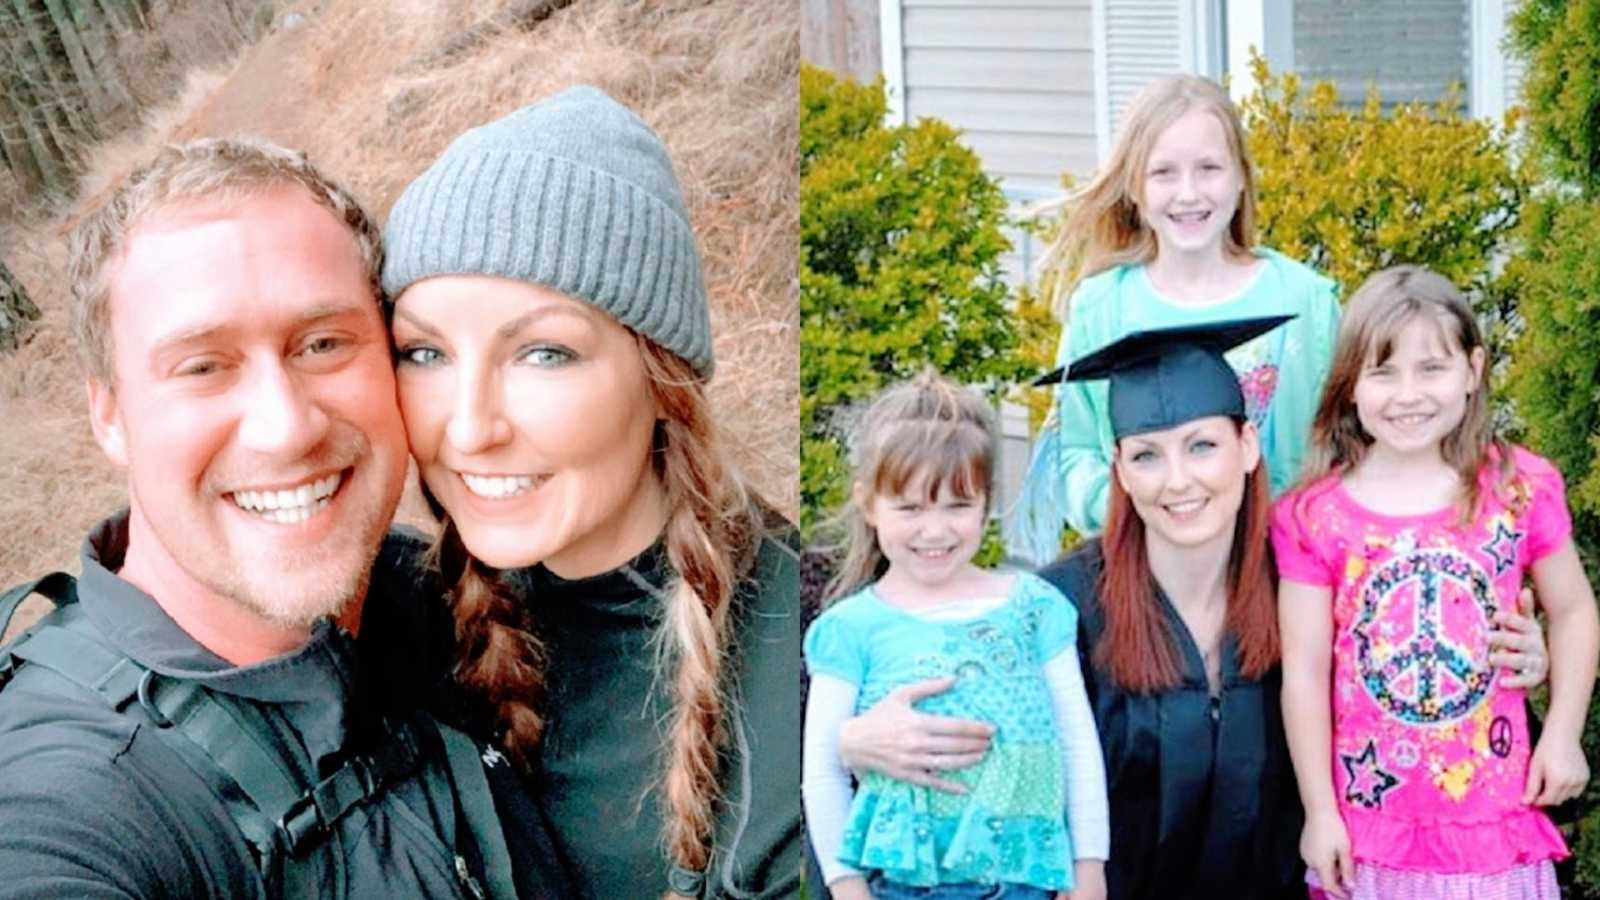 A mother and her husband in the woods and a mother wearing a cap and gown with her three daughters